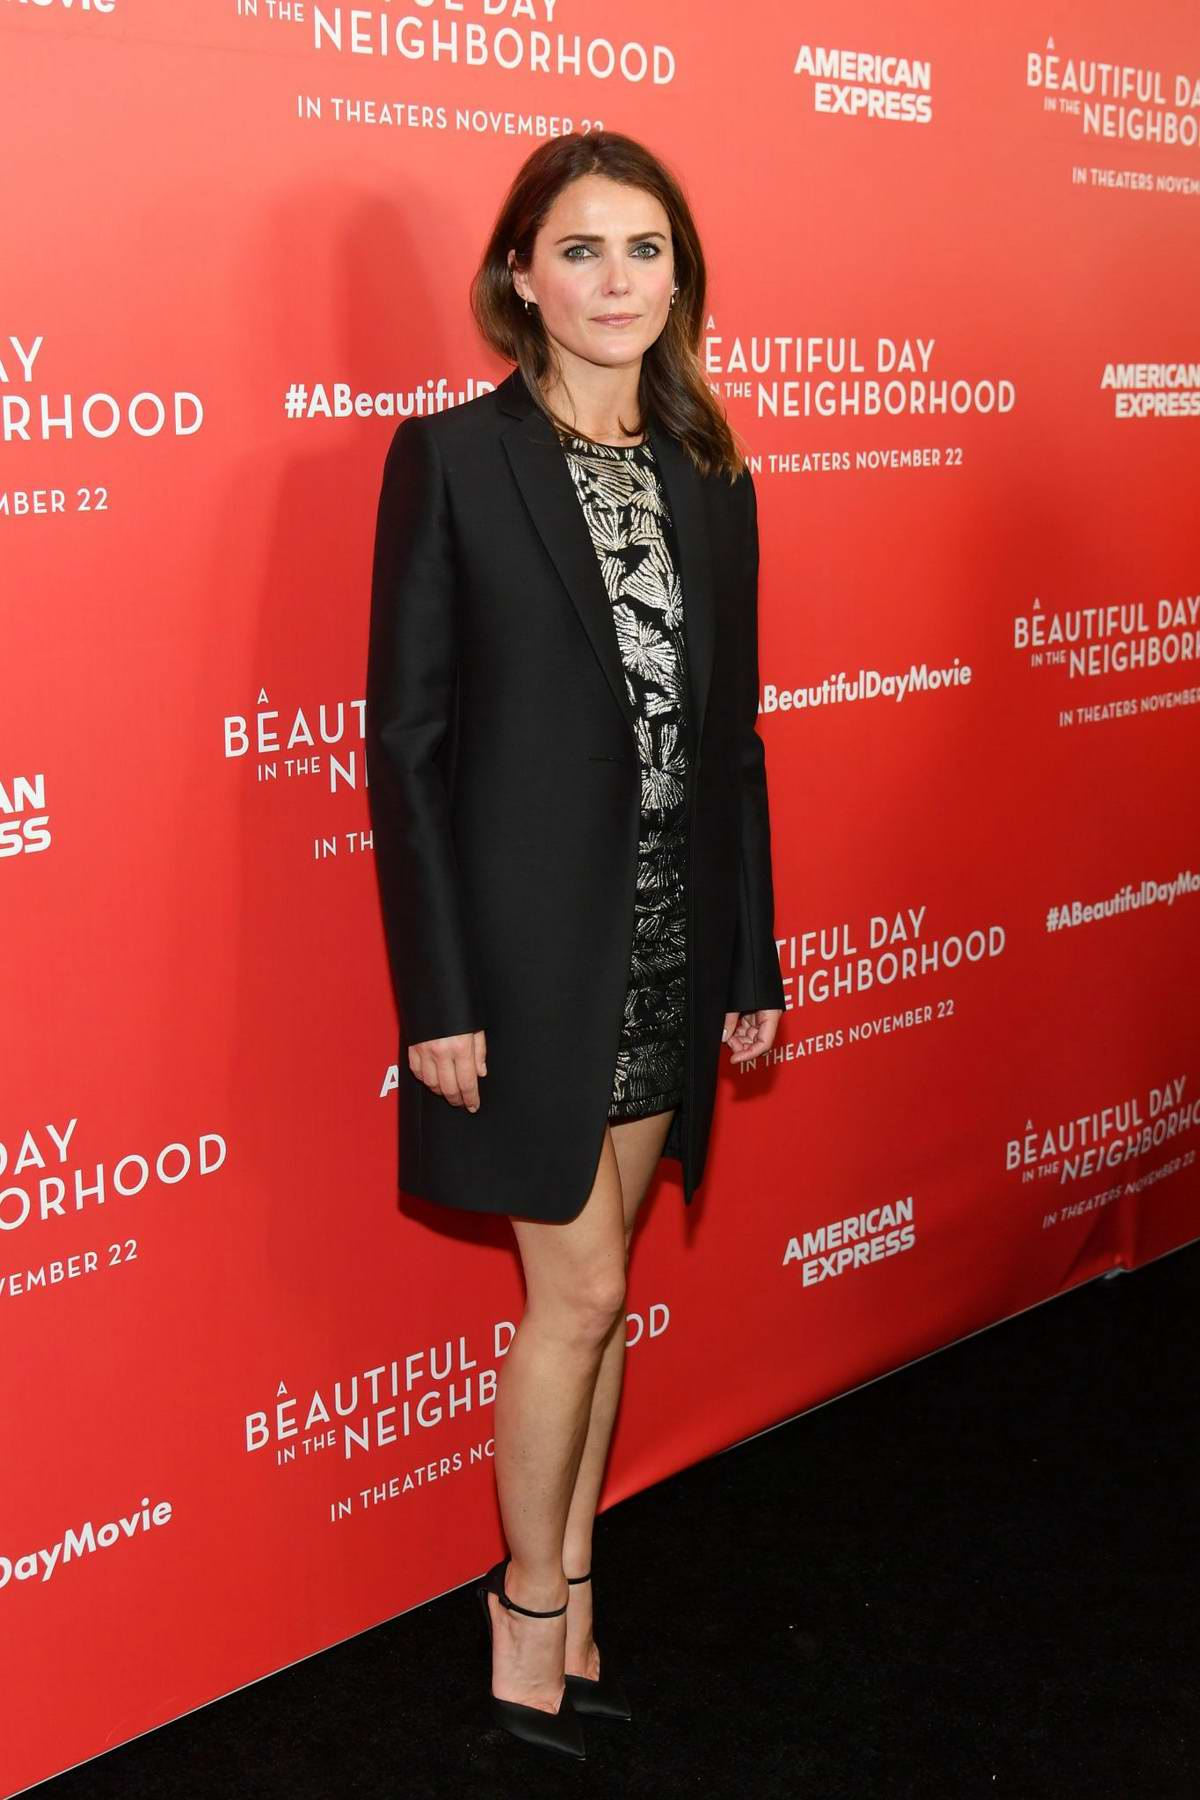 Keri Russell attends 'A Beautiful Day In The Neighborhood' NY Screening at Henry R Luce Auditorium in Brookfield Place, New York City